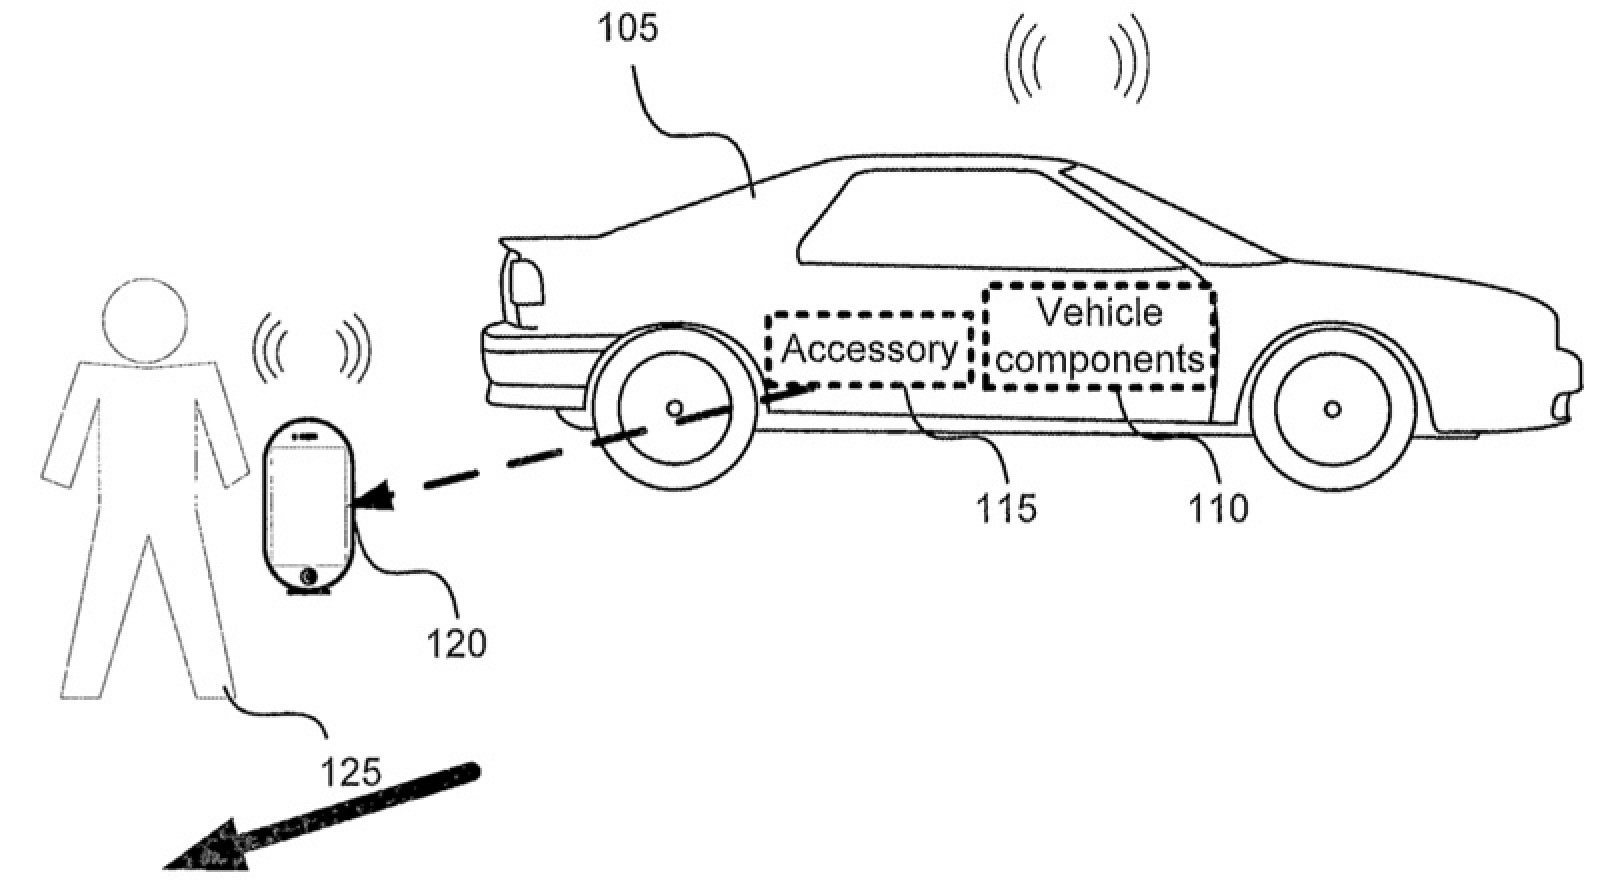 Geofencing to Unlock Vehicle Functions Detailed in New